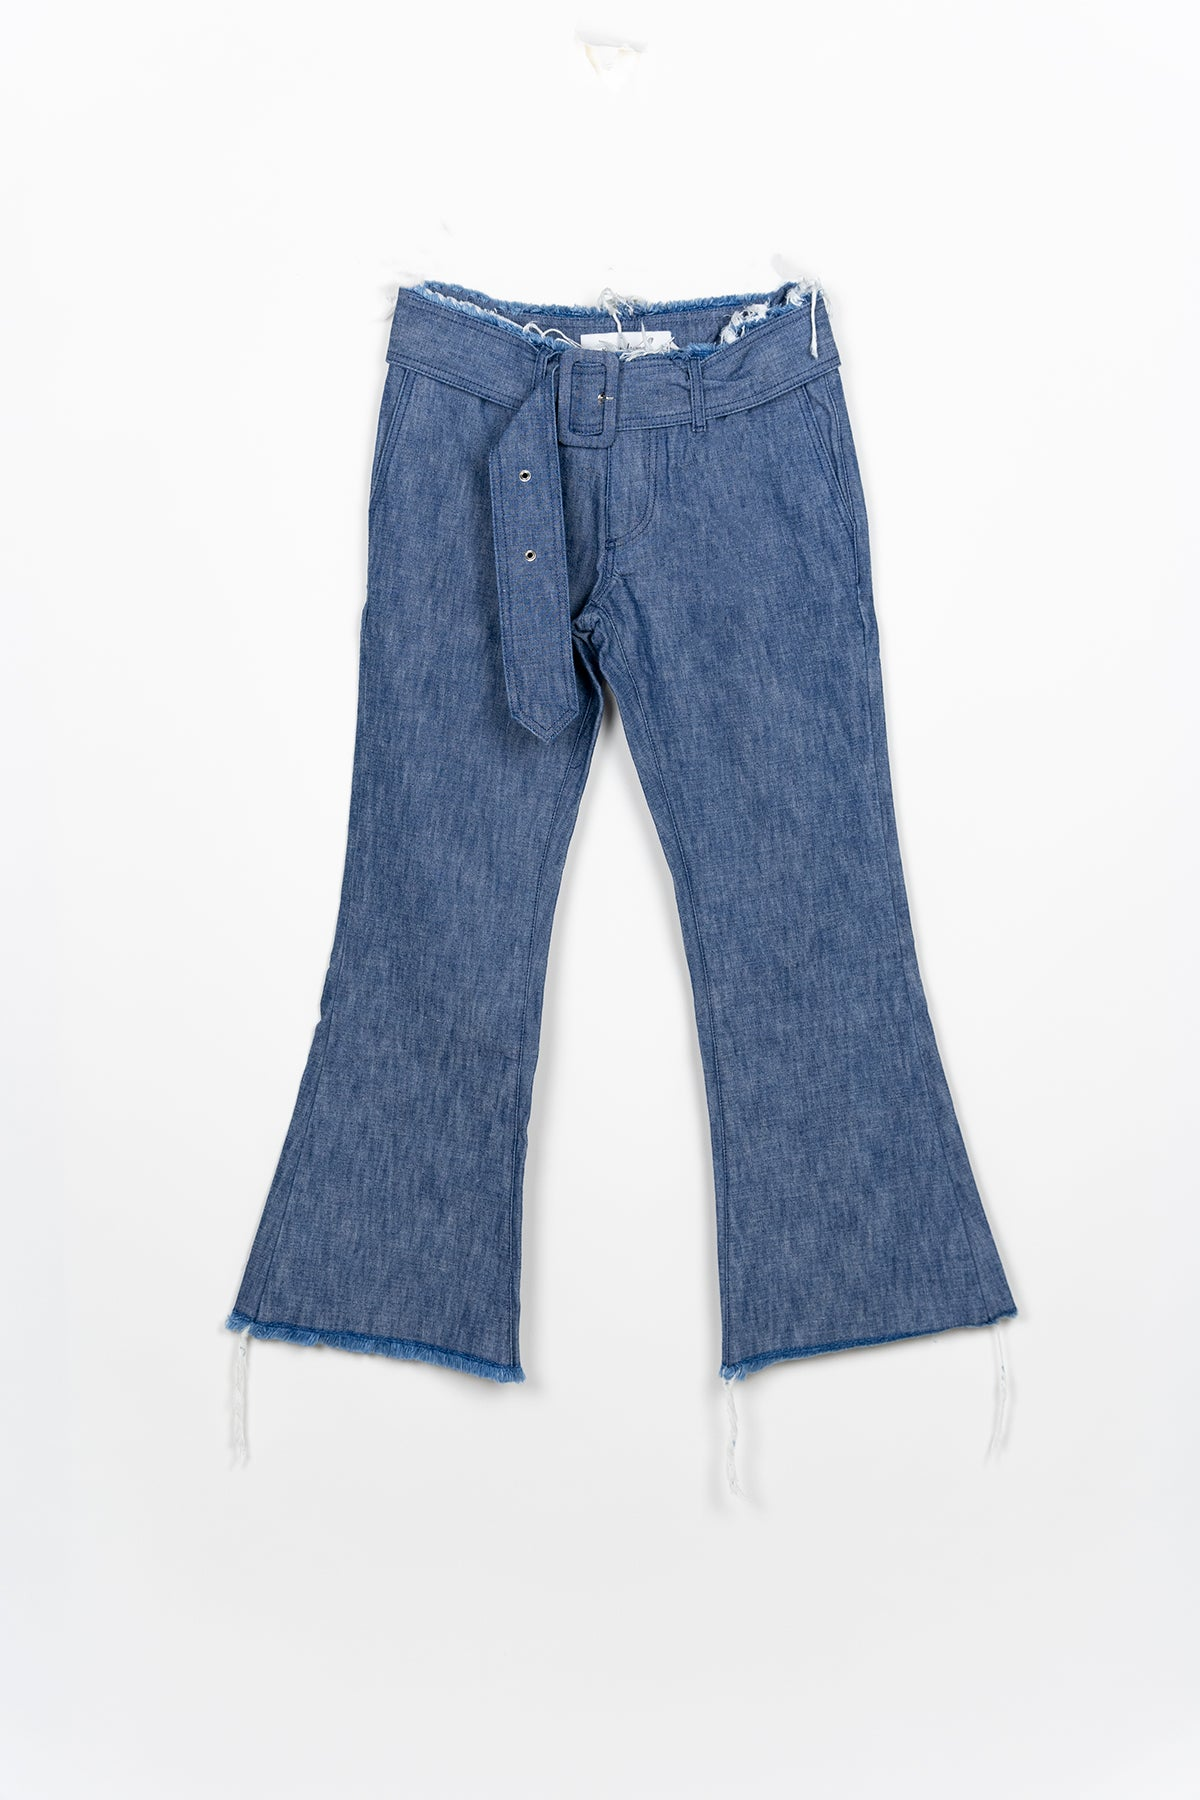 FLARED CAPRI JEANS W/ BUCKLE BELT